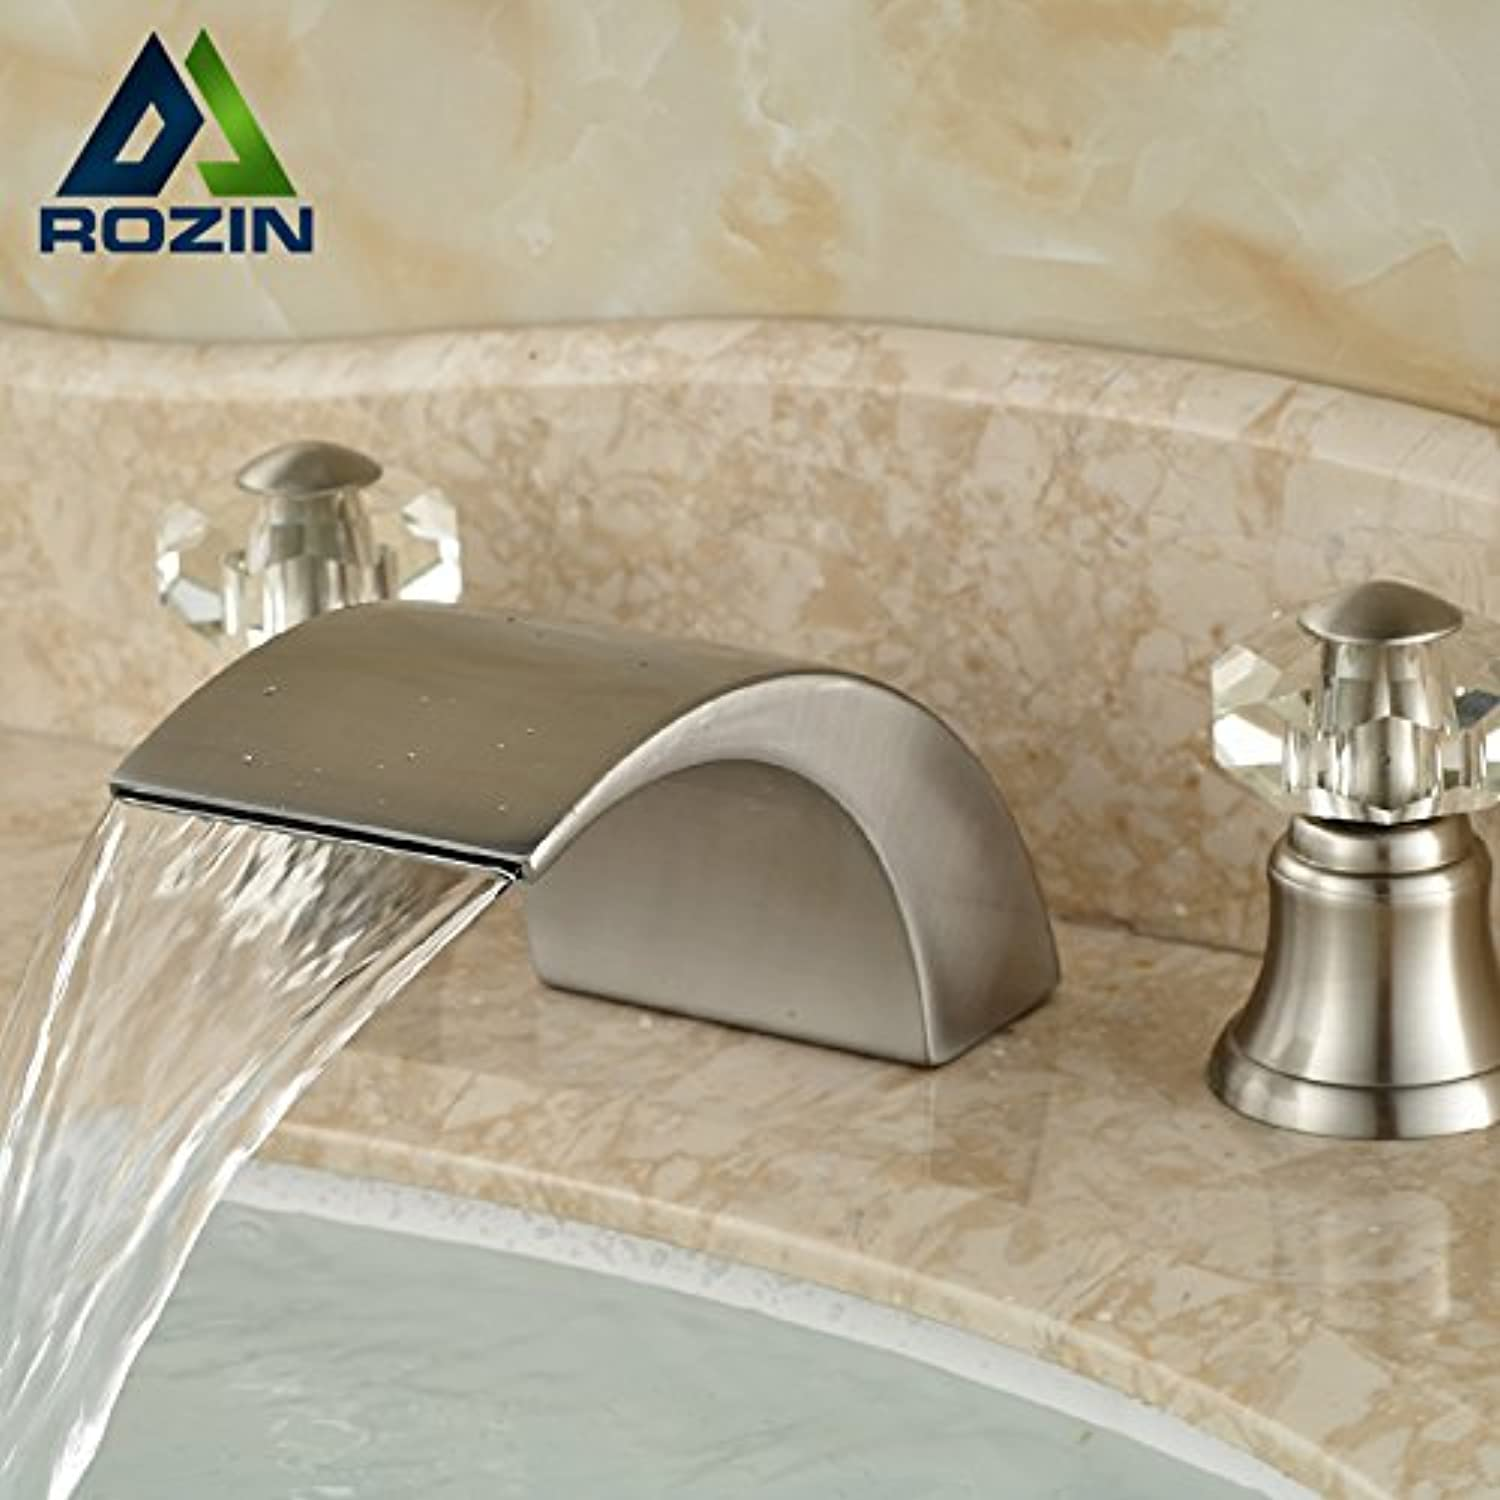 Maifeini On Deck Inssizetion Brushed Nickel Plated Holes Of Hot And Cold Basin Dual Crystal Handle Bathroom Faucet Tap, Nickle-Plated Appearance.